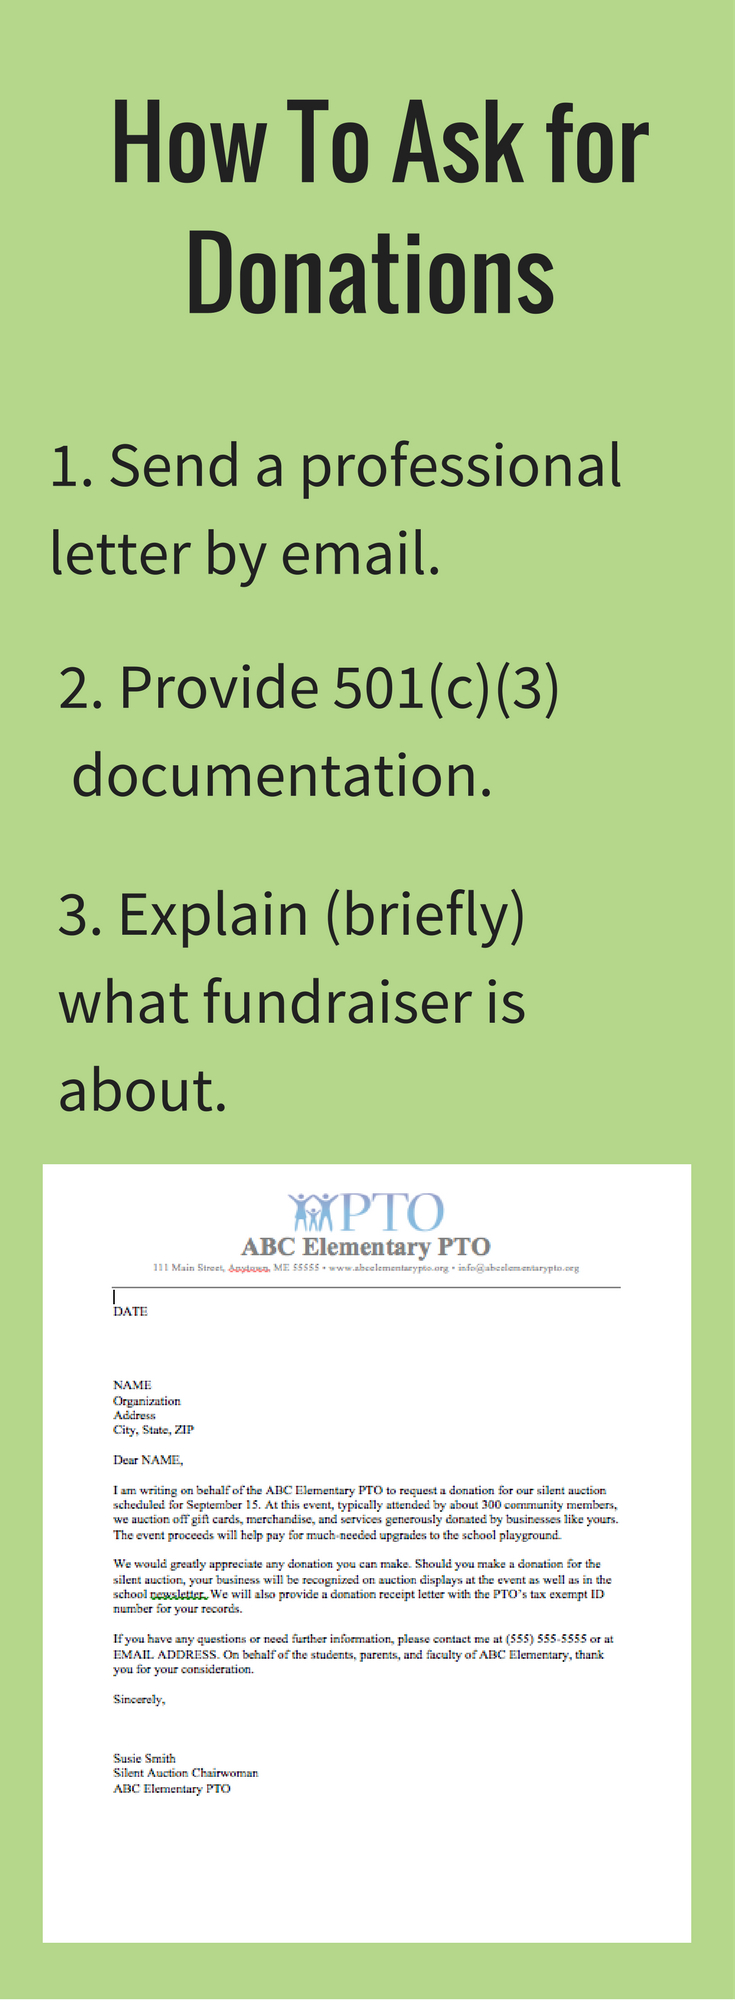 Fundraising Request for Donation Letter Template - Download Our Free Donation Letter Request Template